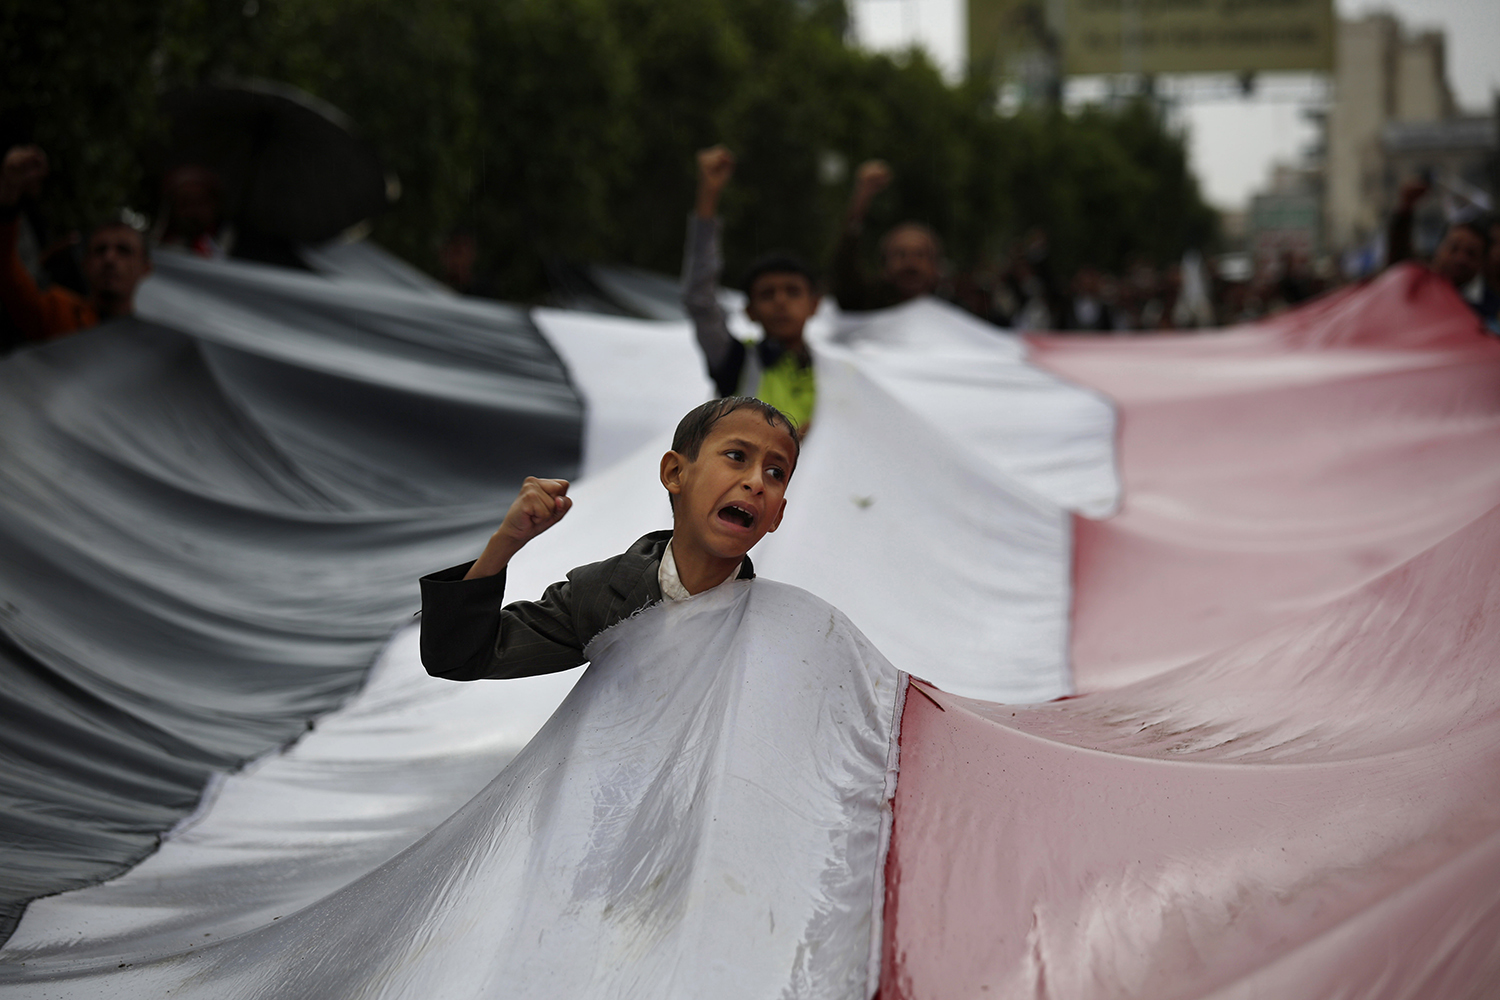 A boy chants slogans through a gap in a national flag raised by Shiite rebels, known as Houthis, during a protest against Saudi-led airstrikes in Sanaa, Yemen, Friday, April 15, 2016. (AP Photo/Hani Mohammed)